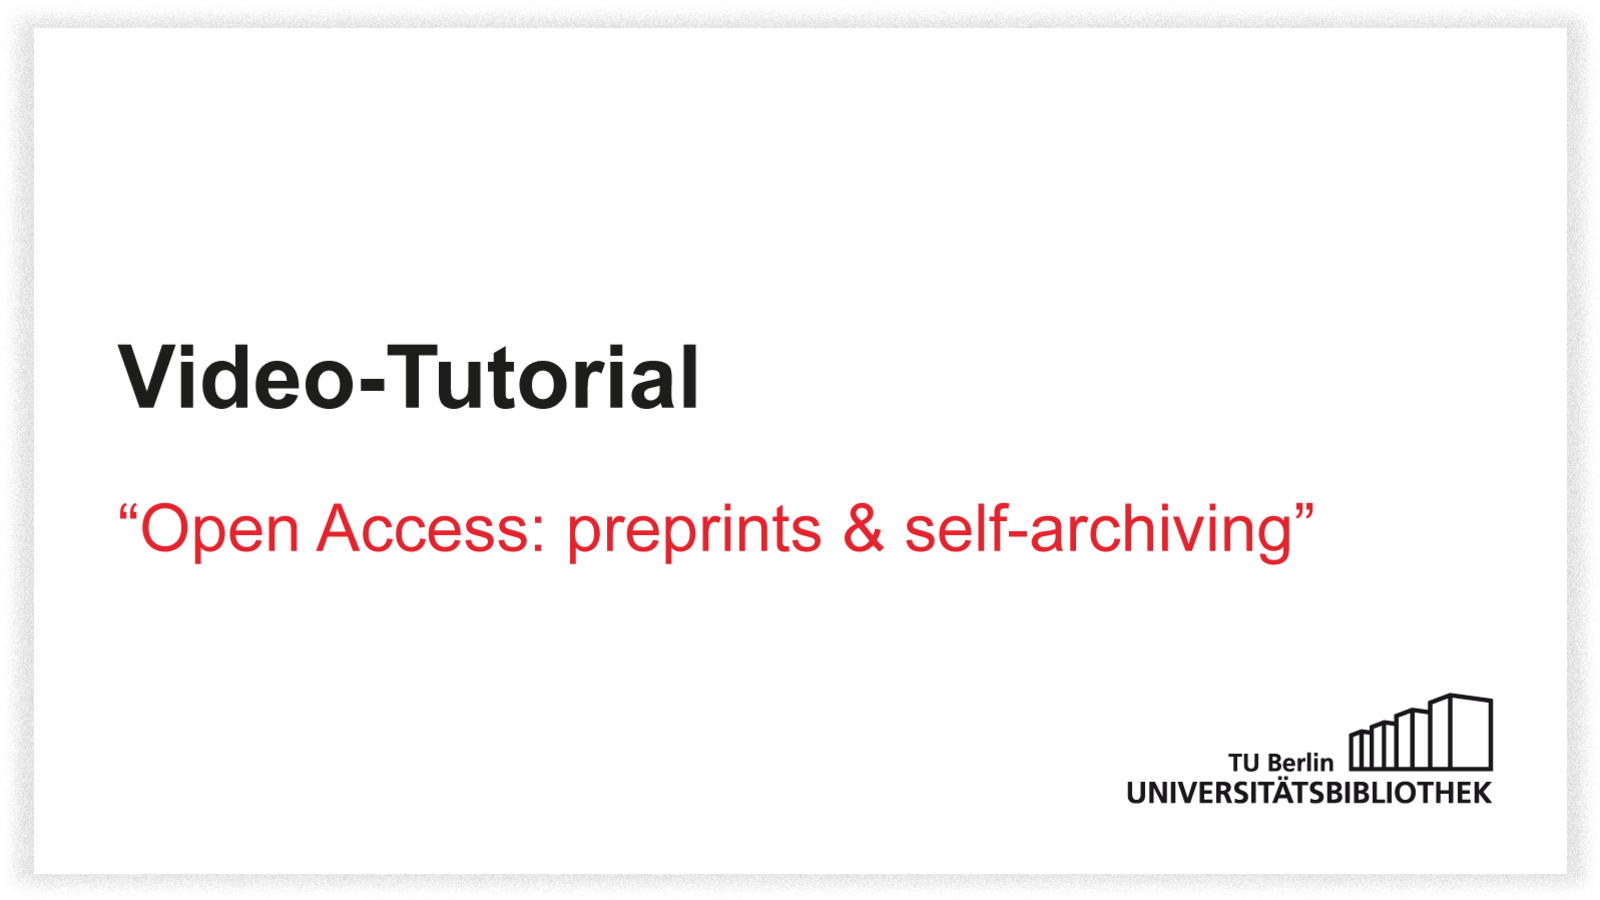 Video-Tutorial: Open Access preprints @ self-archiving, englisch only